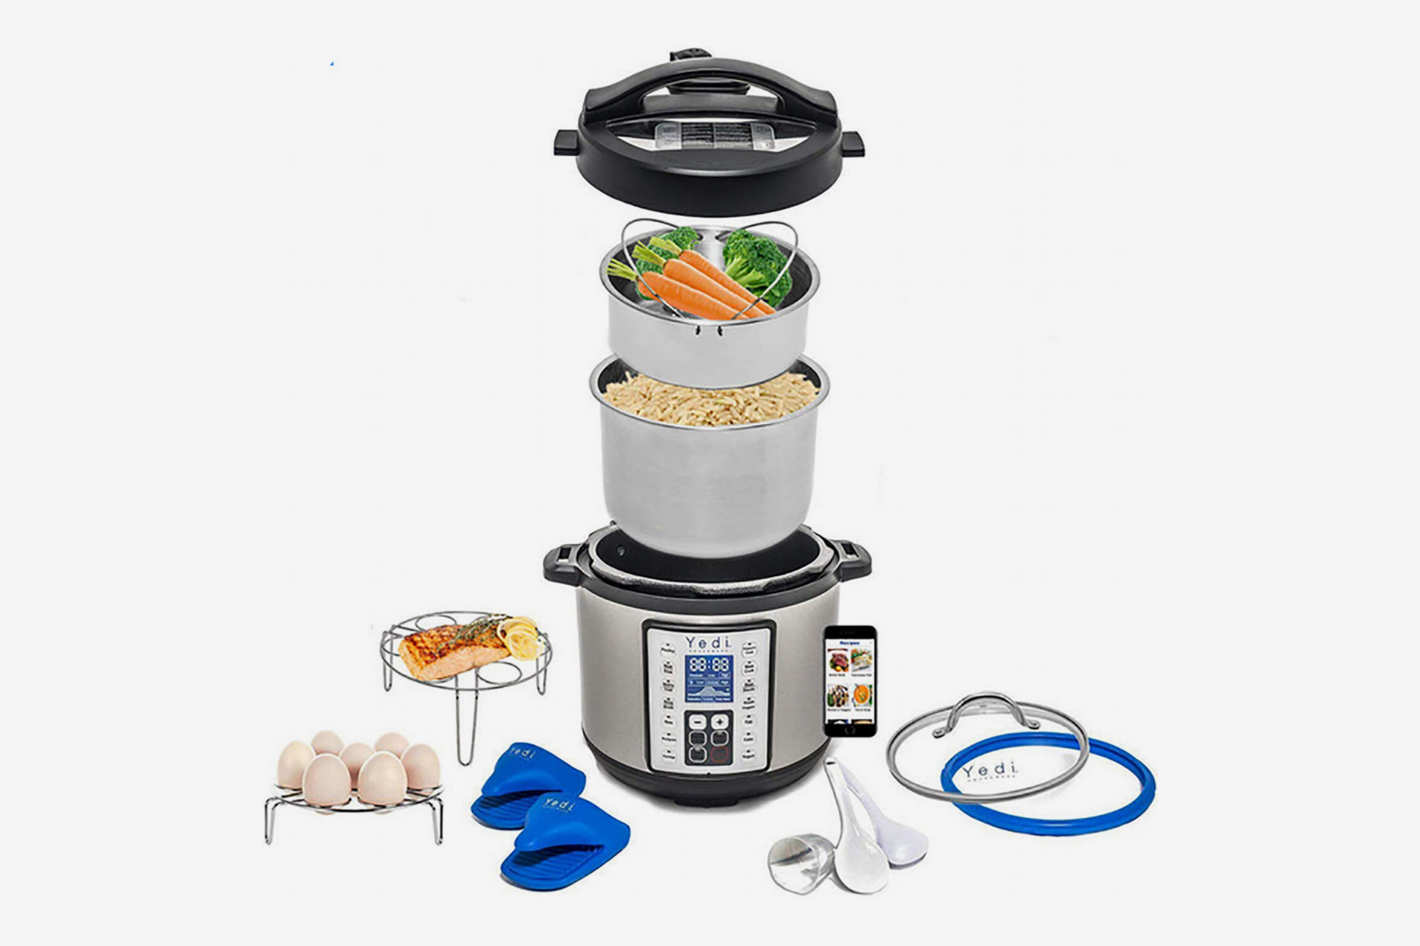 Yedi Houseware Total Package 9-in-1 Instant Programmable Pressure Cooker